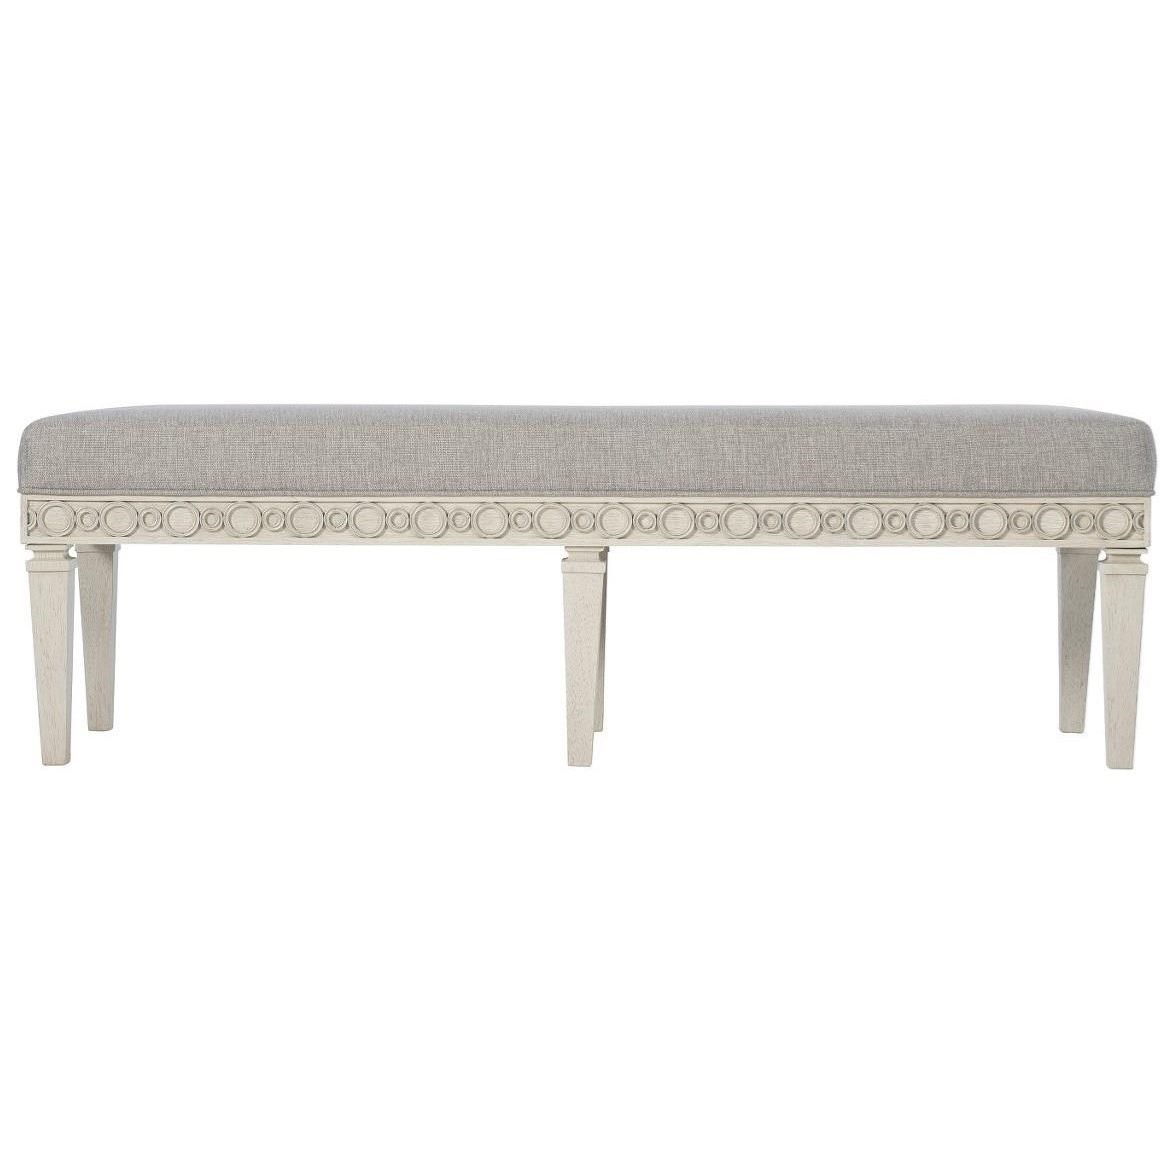 Allure Customizable Accent Bench by Bernhardt at Fisher Home Furnishings